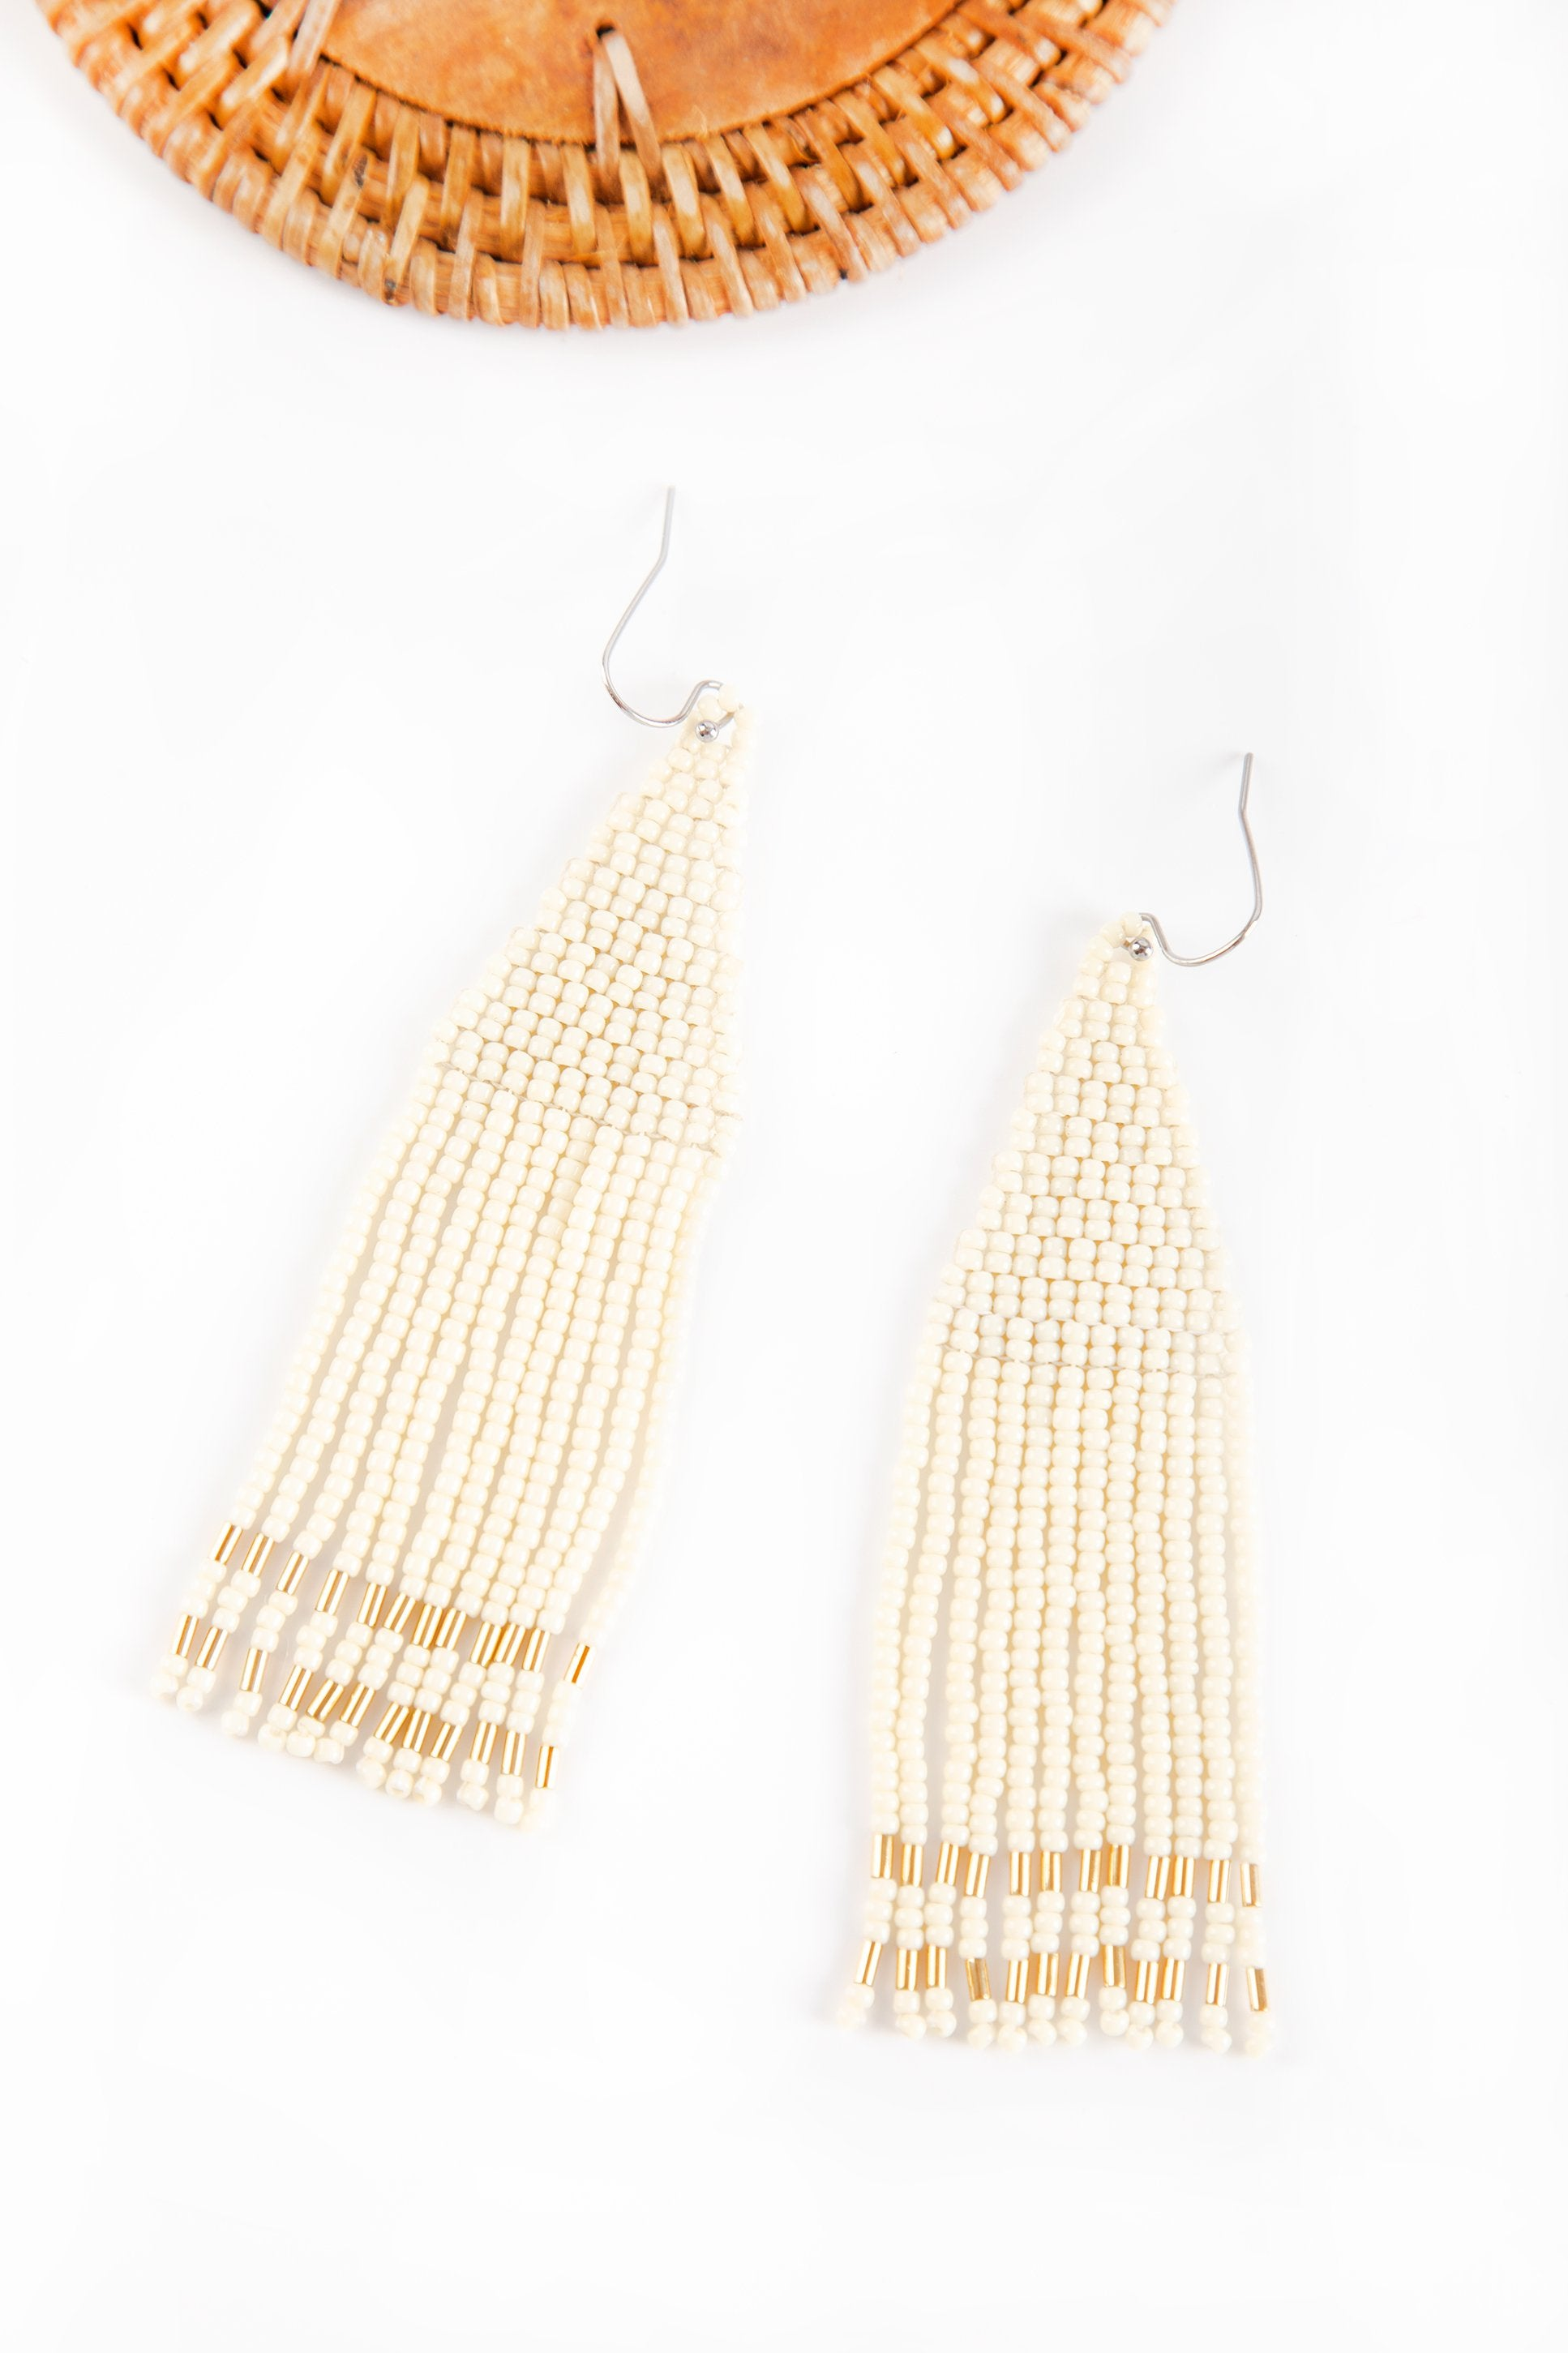 Zeel Beaded Earrings - Ivory Gold Pipe - Our Barehands